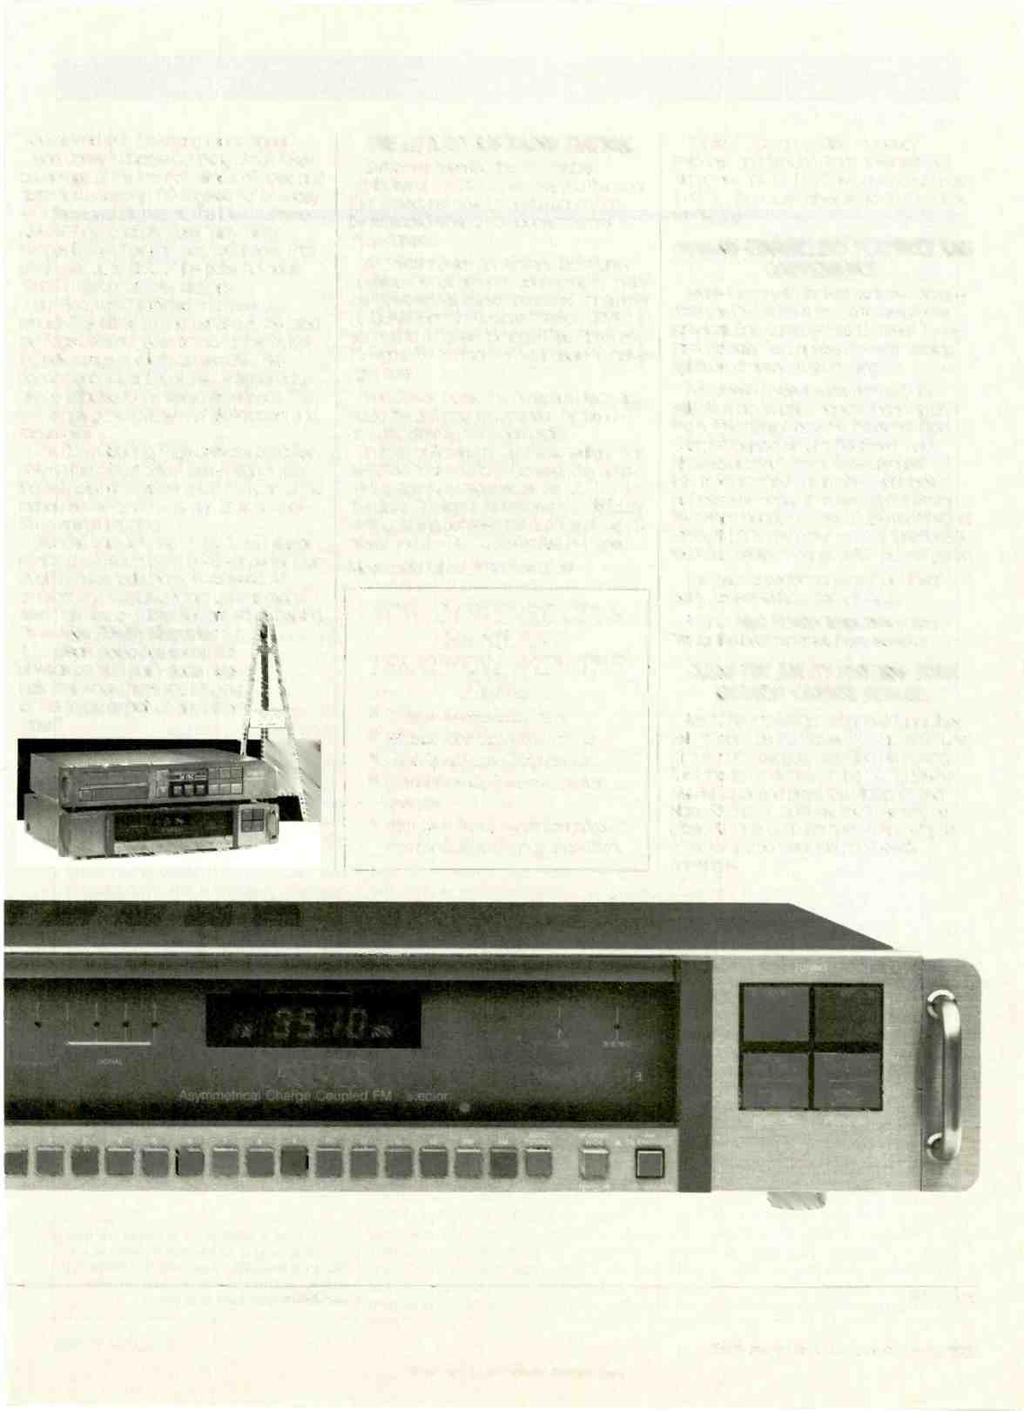 May 1986 Idinii Pdf Hifi Ipod Amplifier Circuit Using Ic 741 Electronic Recombined With The Strong Mono Signal